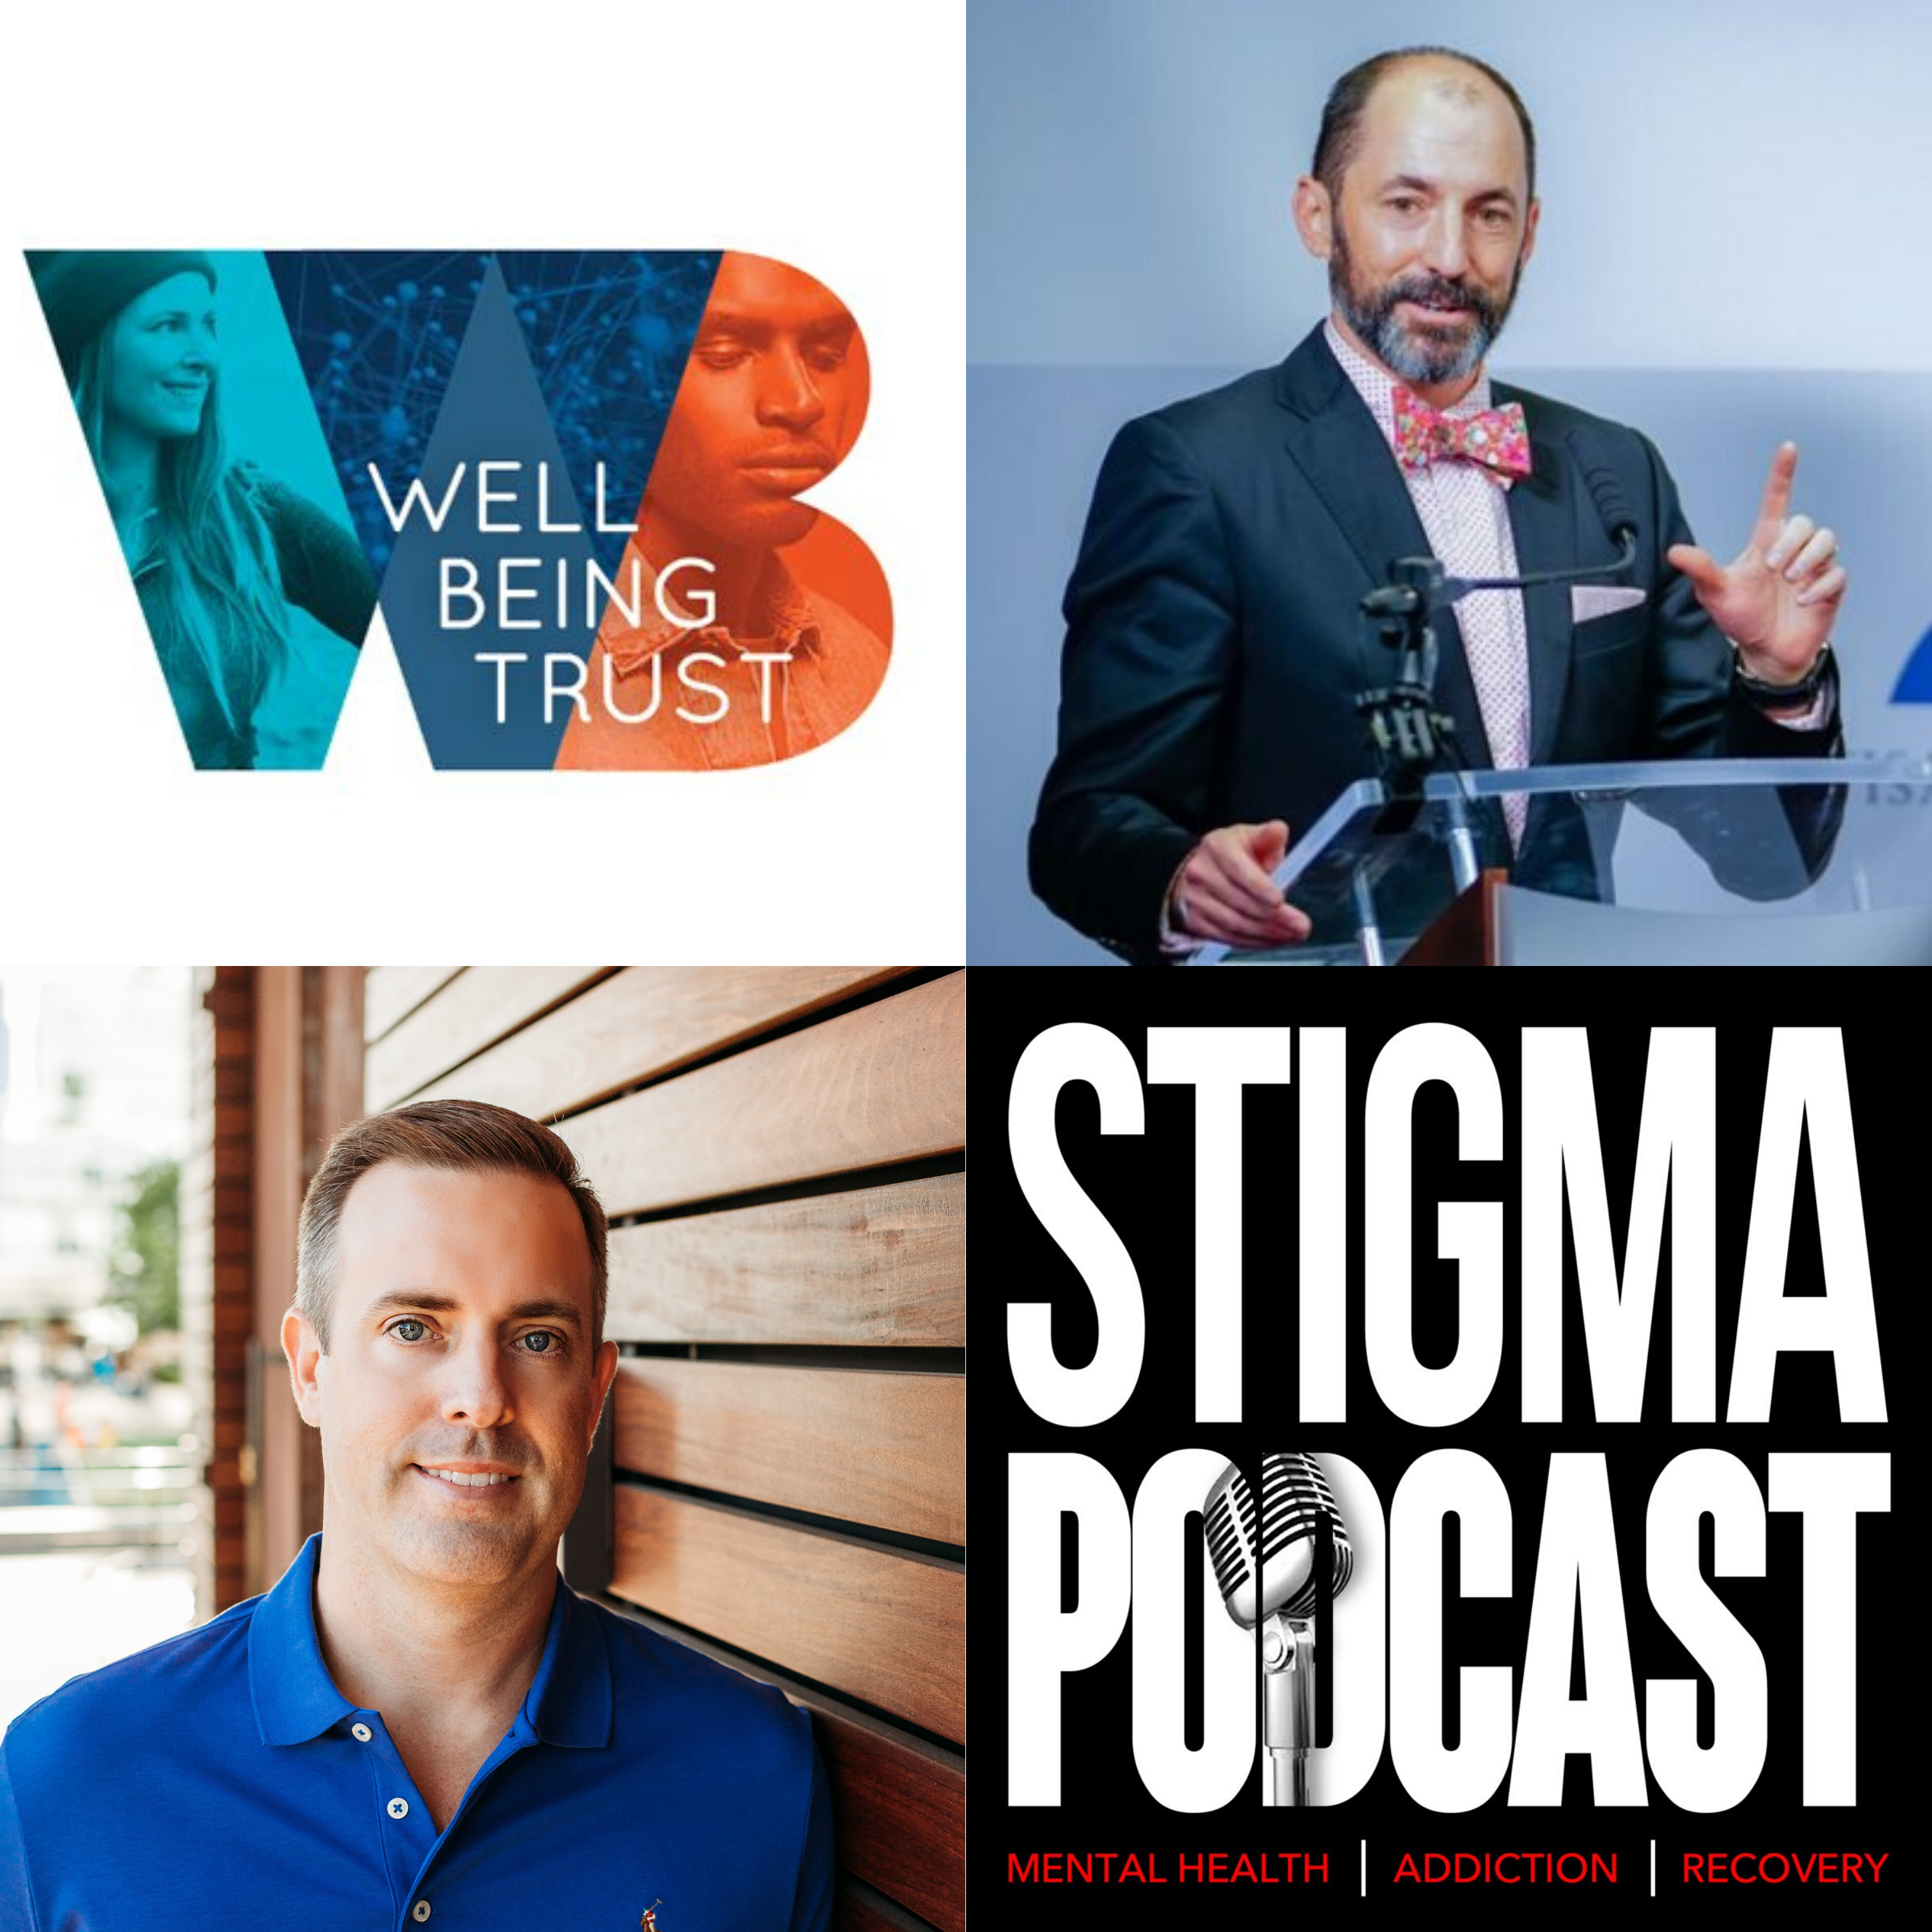 Stigma Podcast - Mental Health - #33 - How to Fix Mental Health Care in America – Ben Miller from Well Being Trust